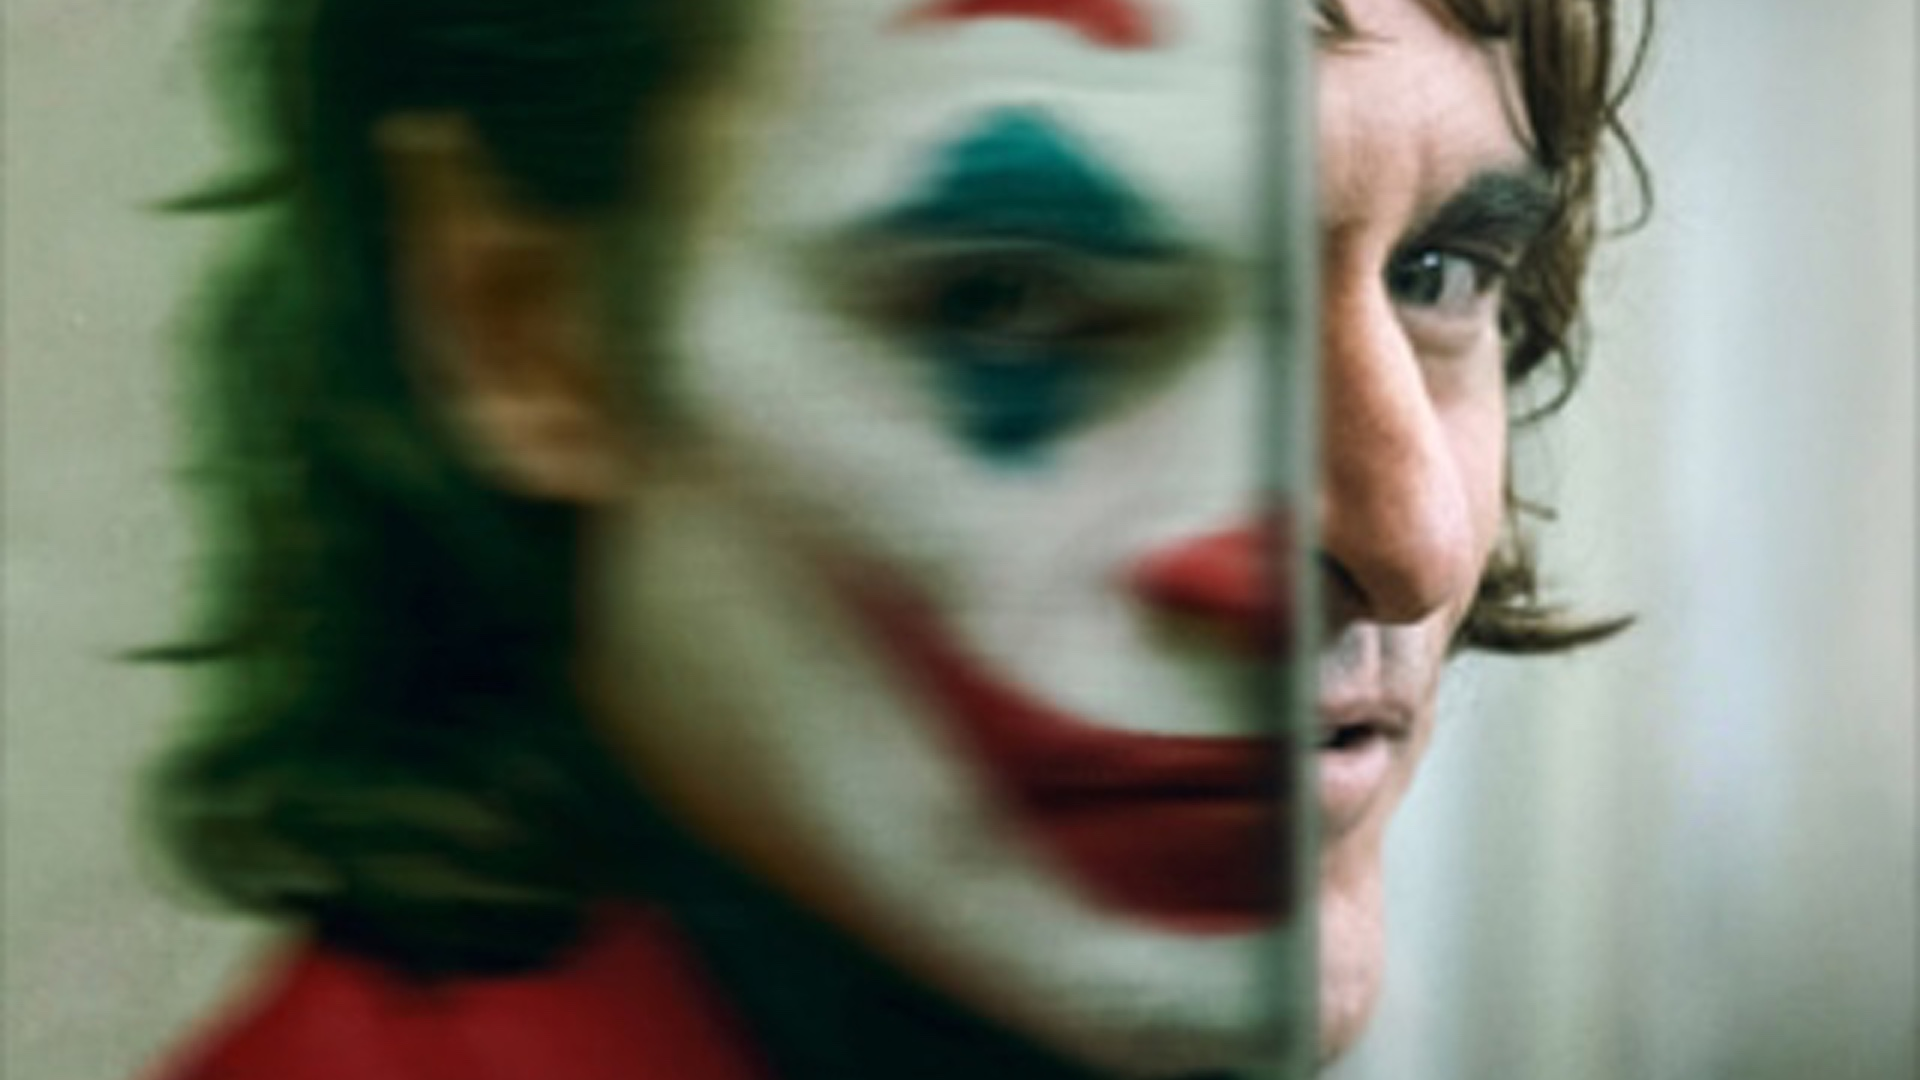 New Joker Images Of Joaquin Phoenix As The Clown Prince Of